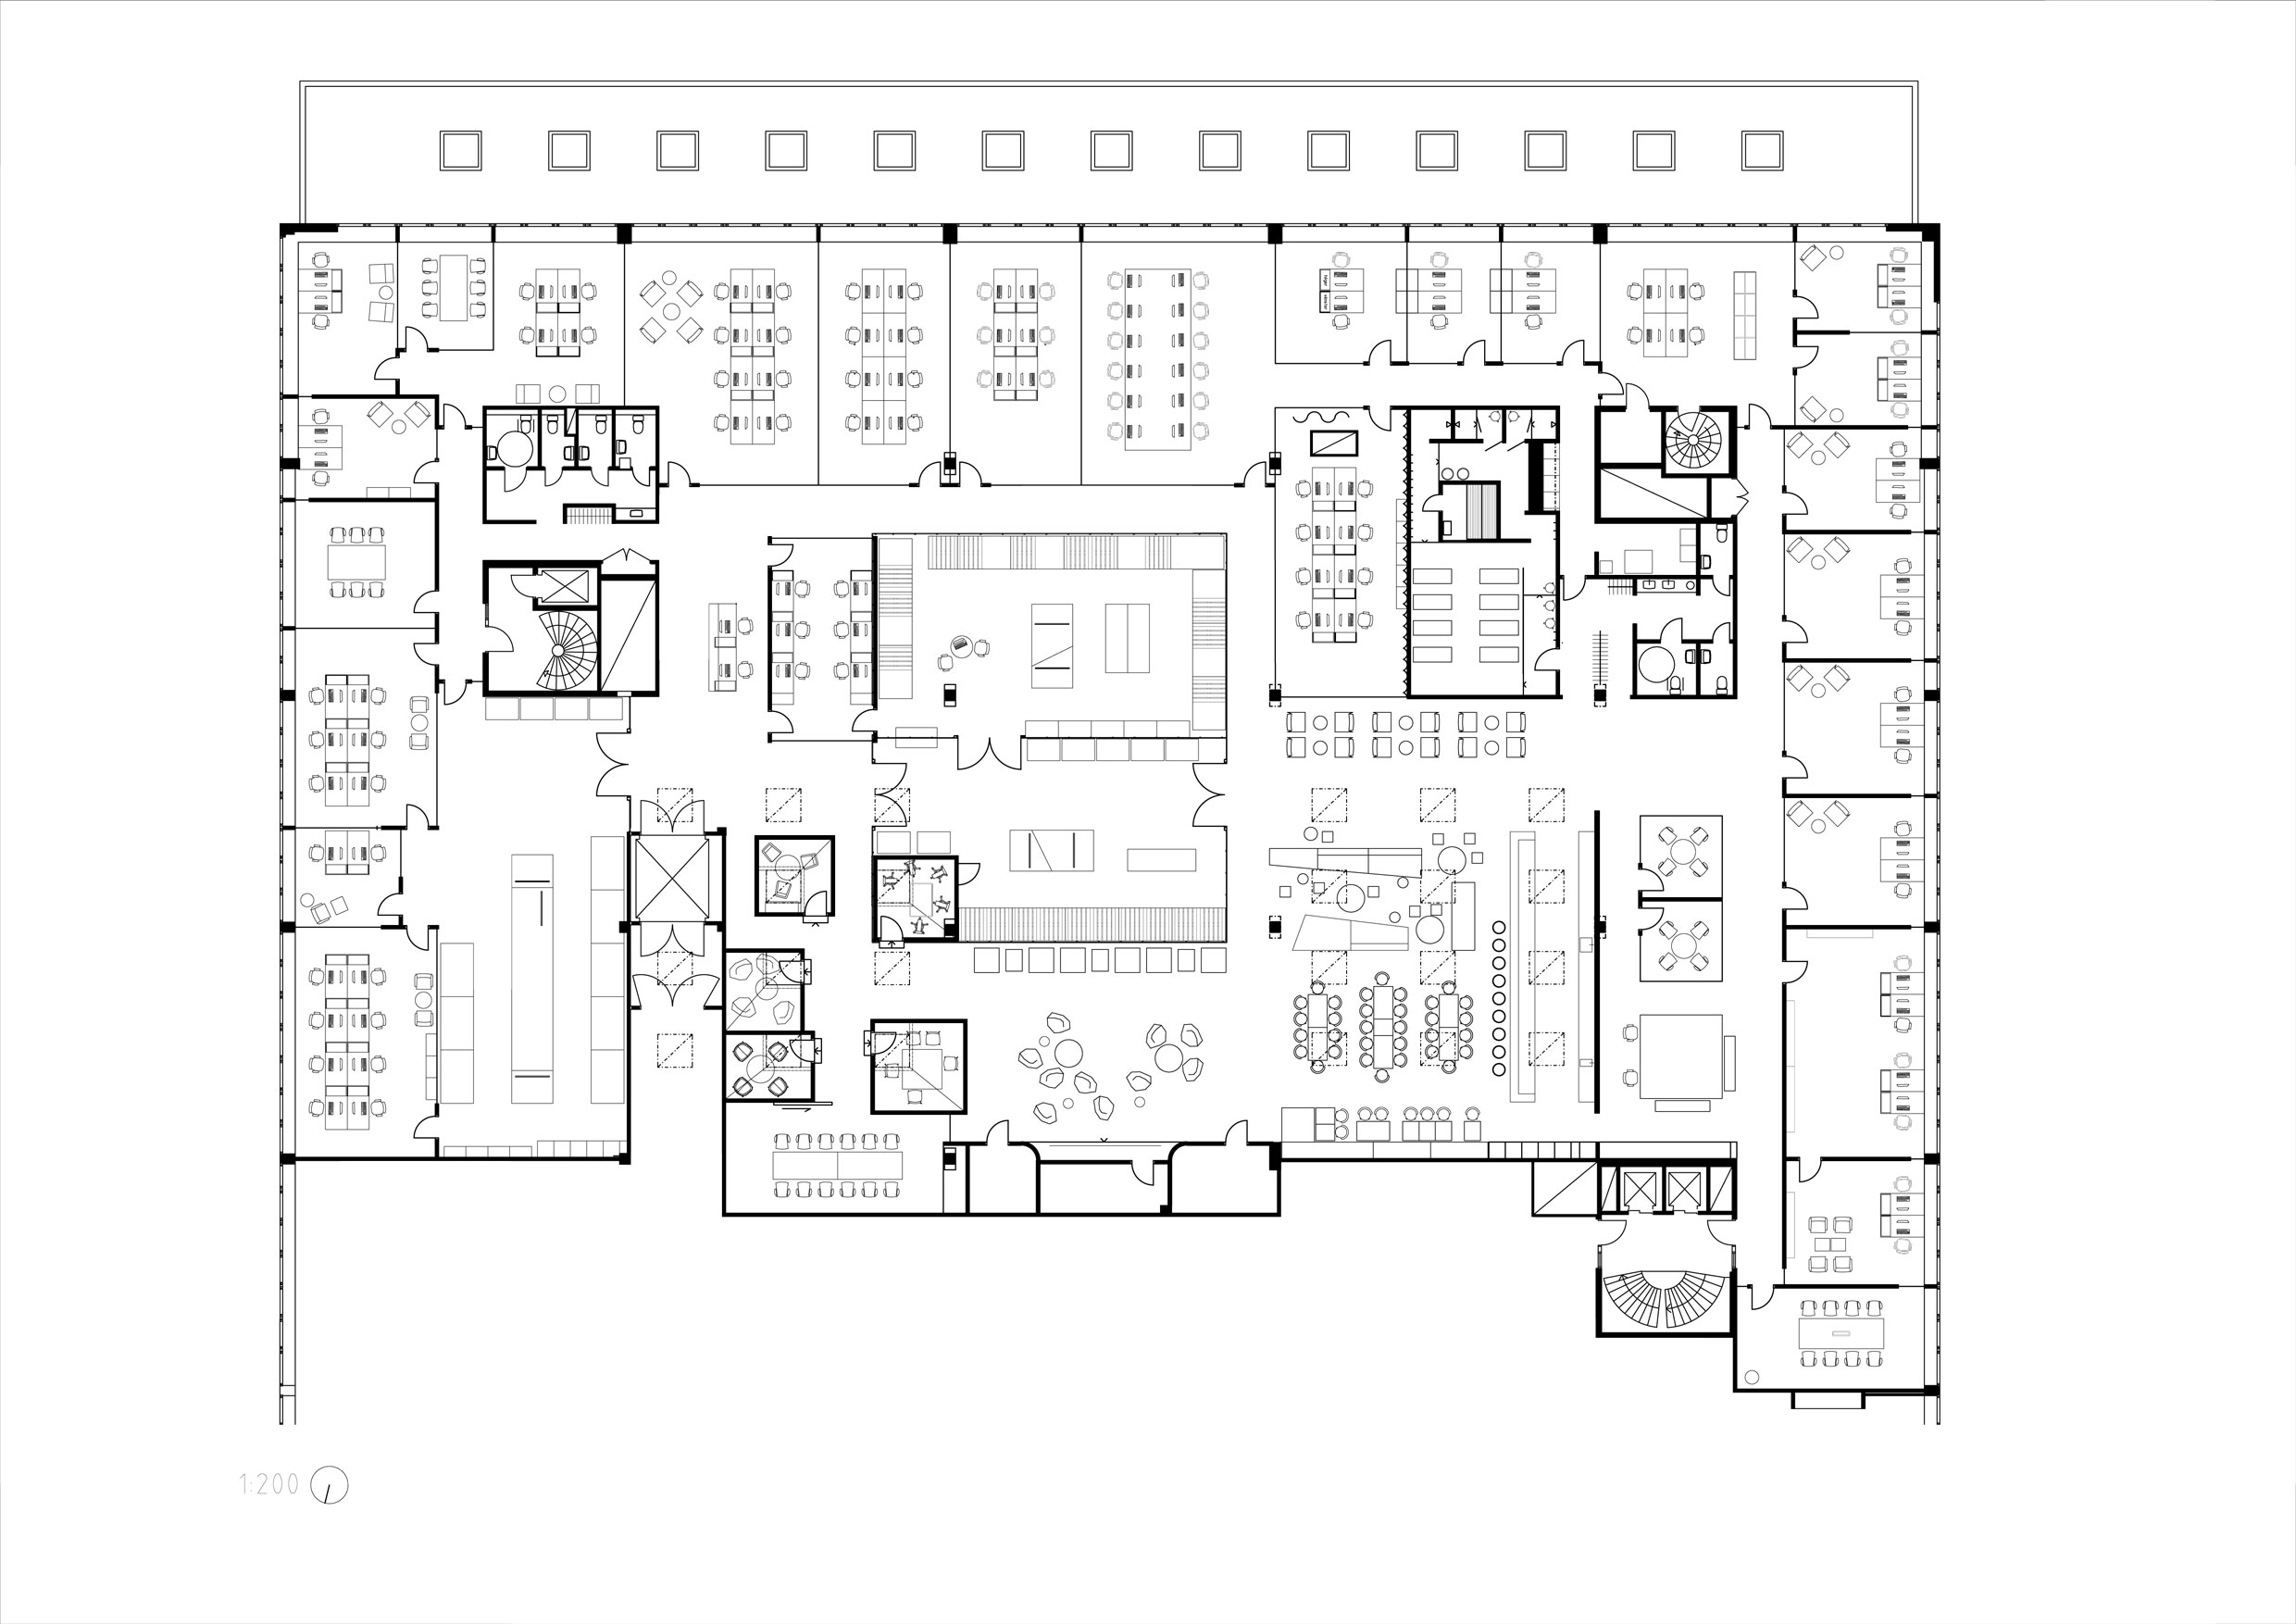 Main floor plan without room keys. }